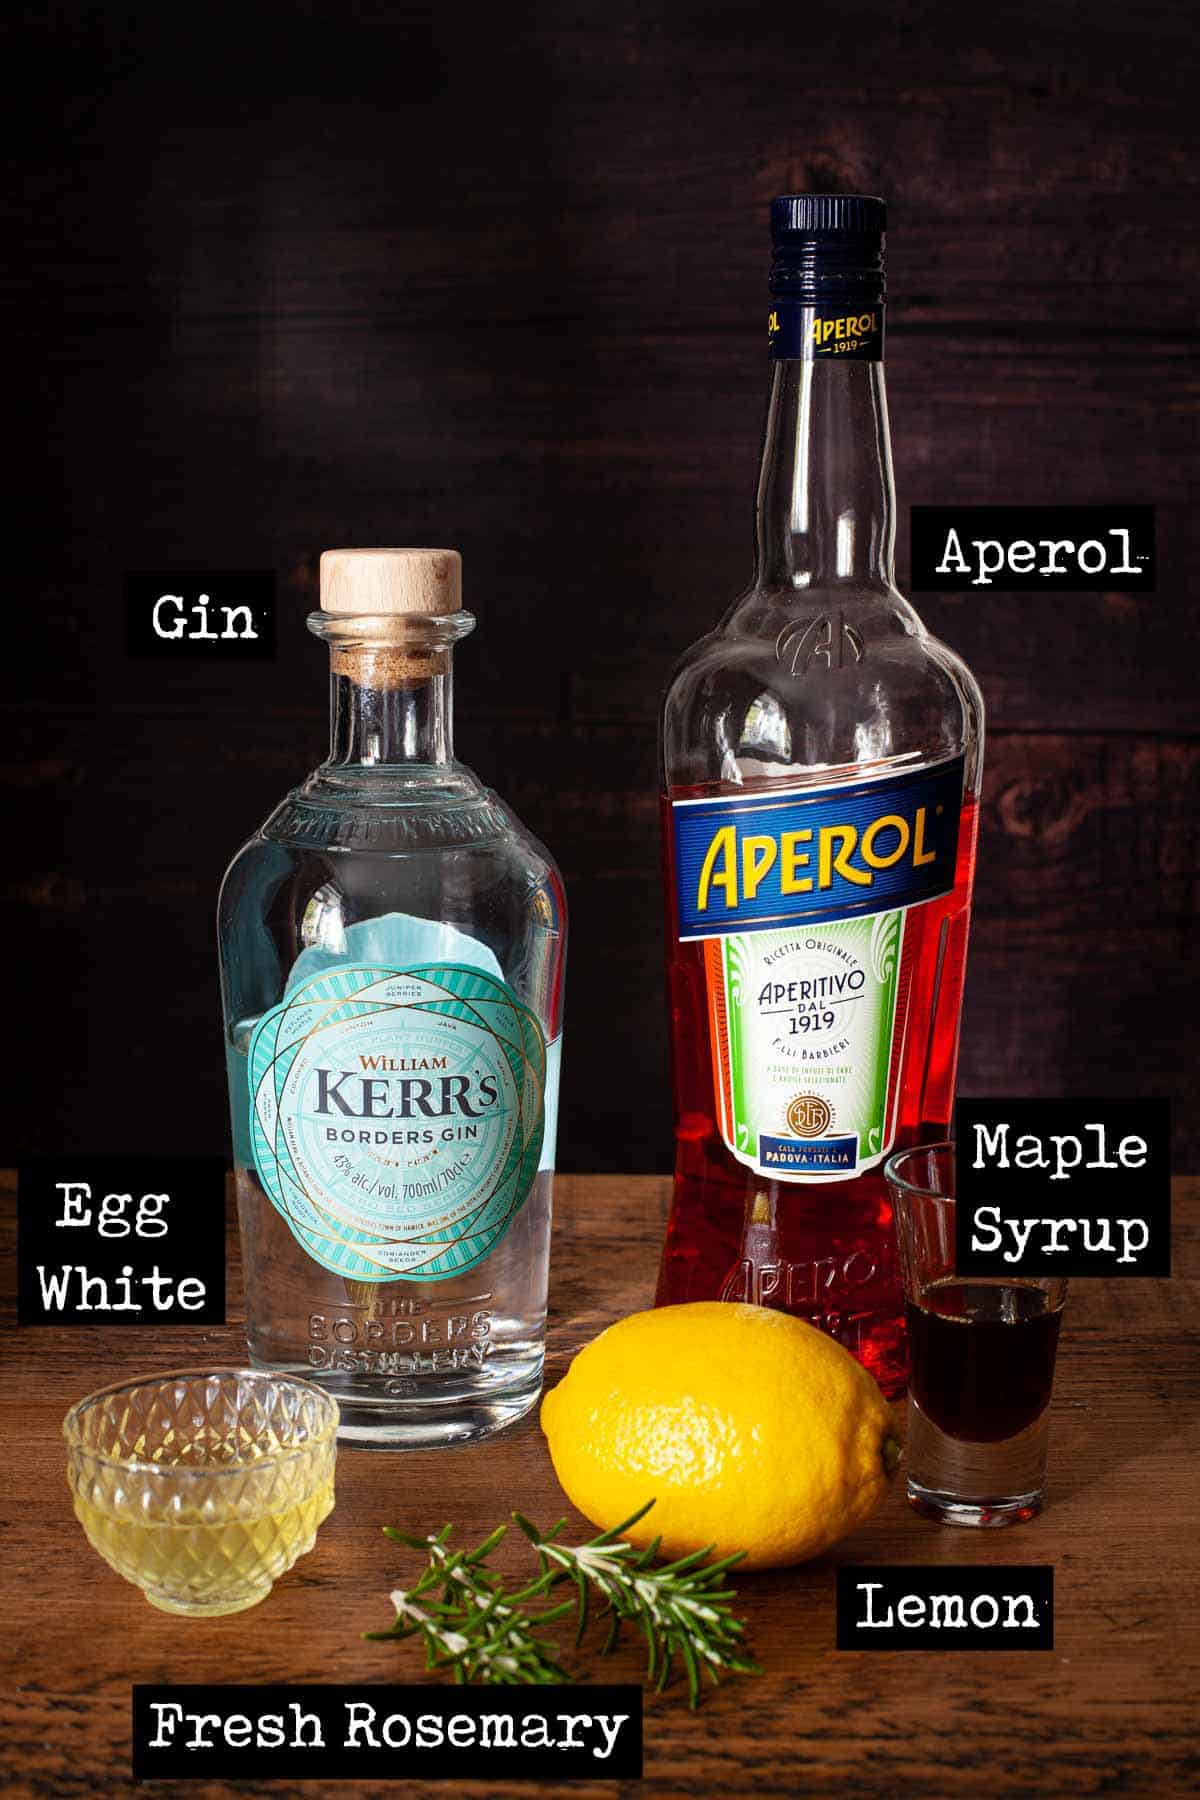 Ingredients for an Aperol Gin cocktail